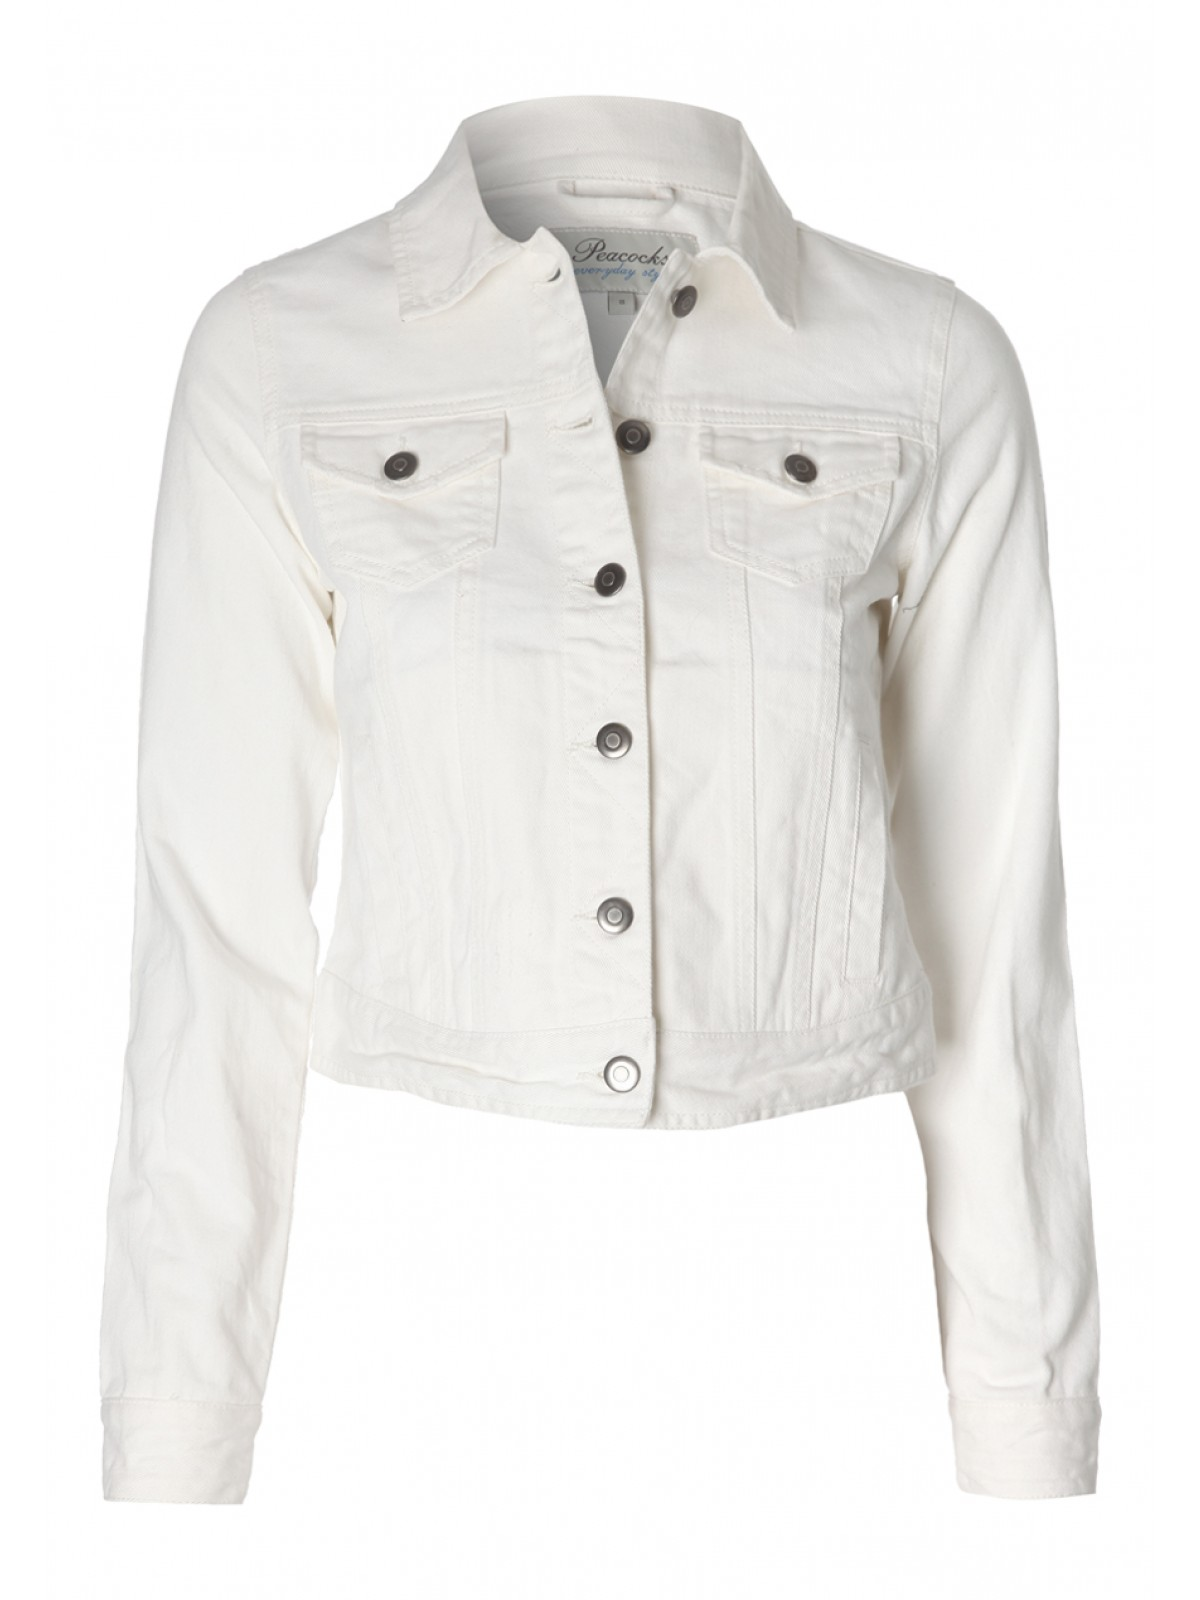 Buy low price, high quality white denim jacket with worldwide shipping on newbez.ml